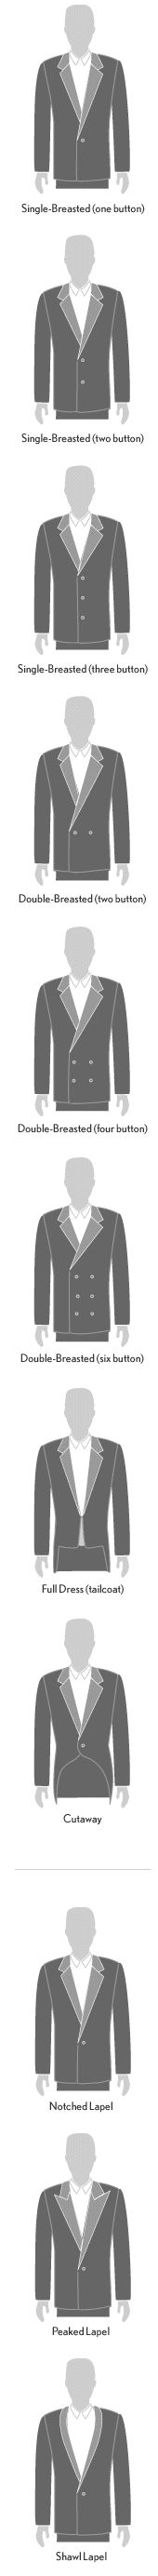 #Grooms get schooled in the lesson of the #wedding #tuxedo with this style glossary.